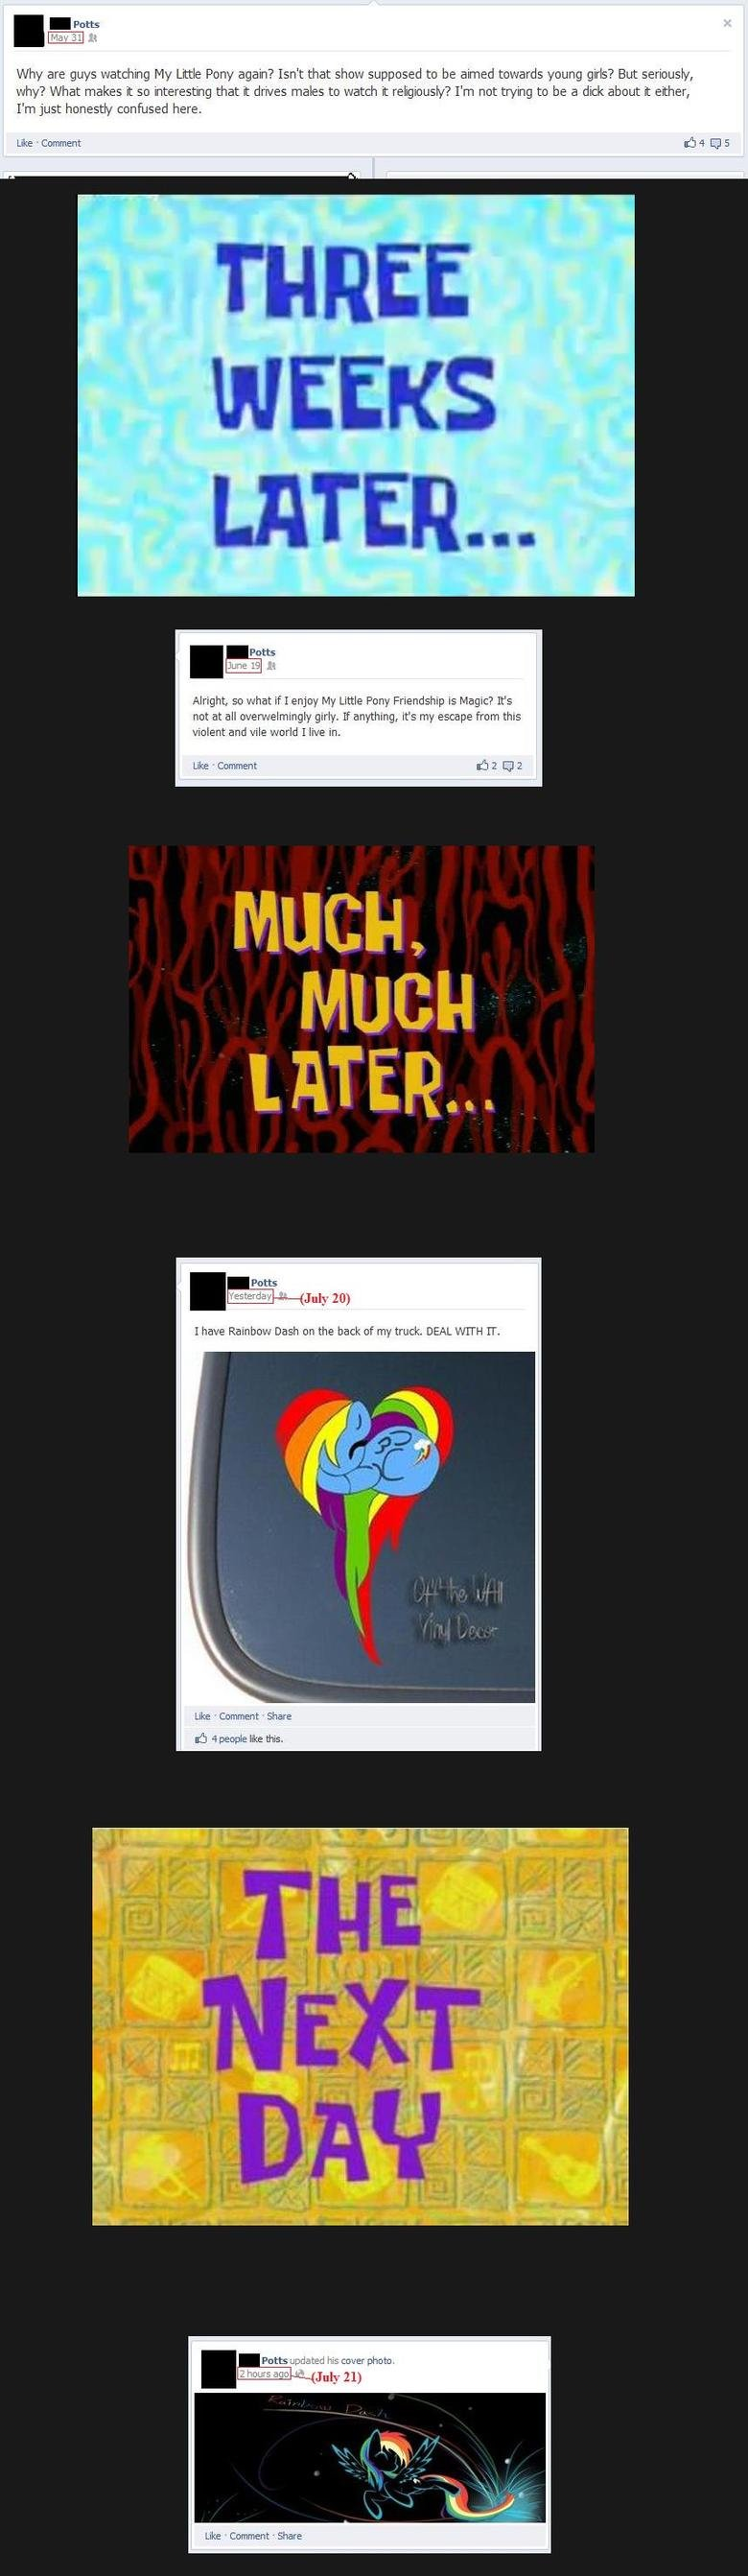 The Transformation. The full transformation...takes about 2-3 months Also don't look at the tags. ME a we iii. ok come on, brony or not, you have to see that this guy is acting like a huge faggot with these facebook updates. he sounds like an attention wanting tween girl